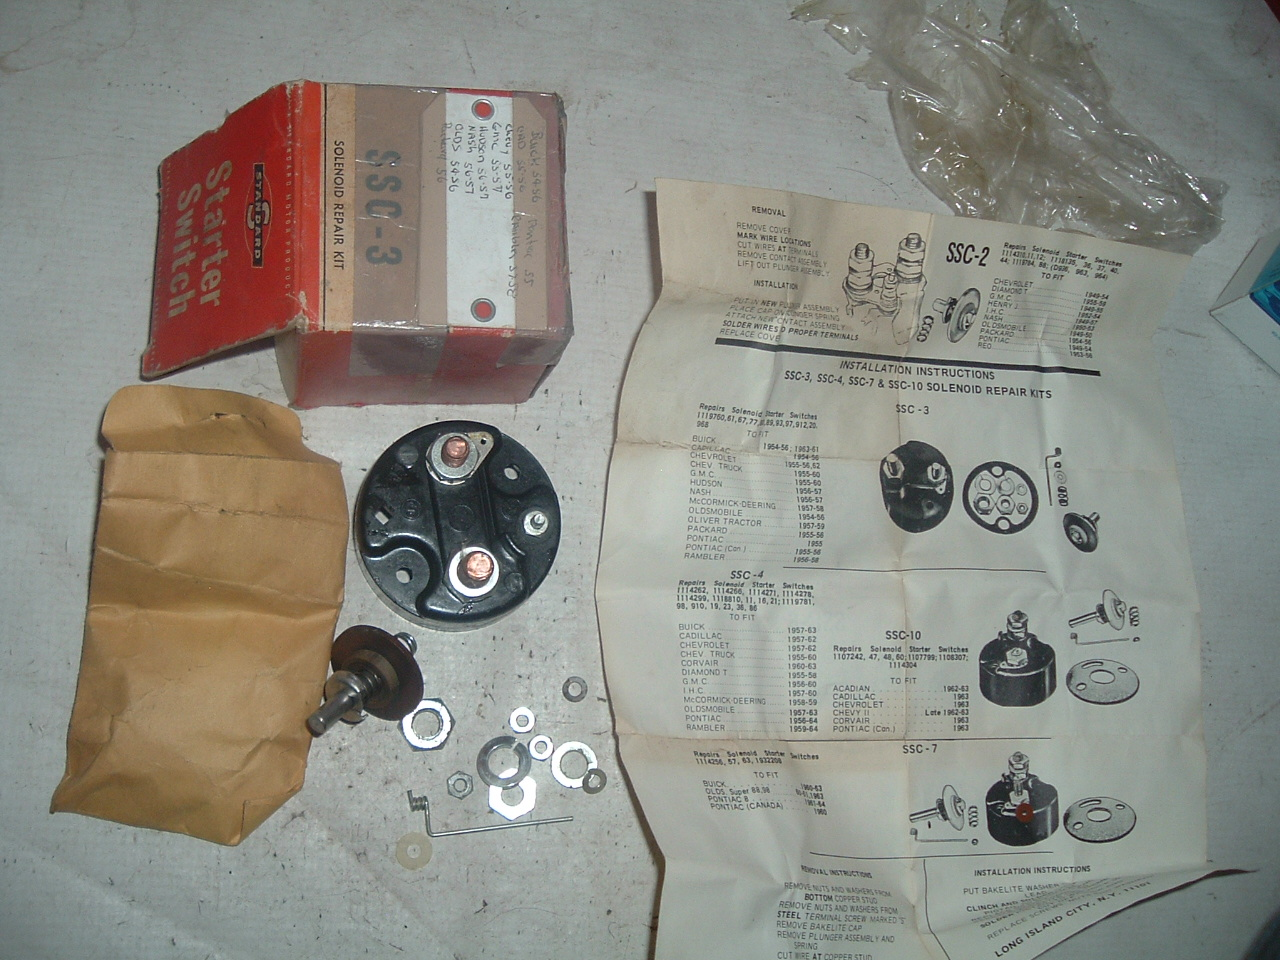 Search Results 1947 Hudson Wiring Harness 1954 55 56 57 Chevrolet Buick Cadillac Oldsmobile Starter Solonoid Repair Kit